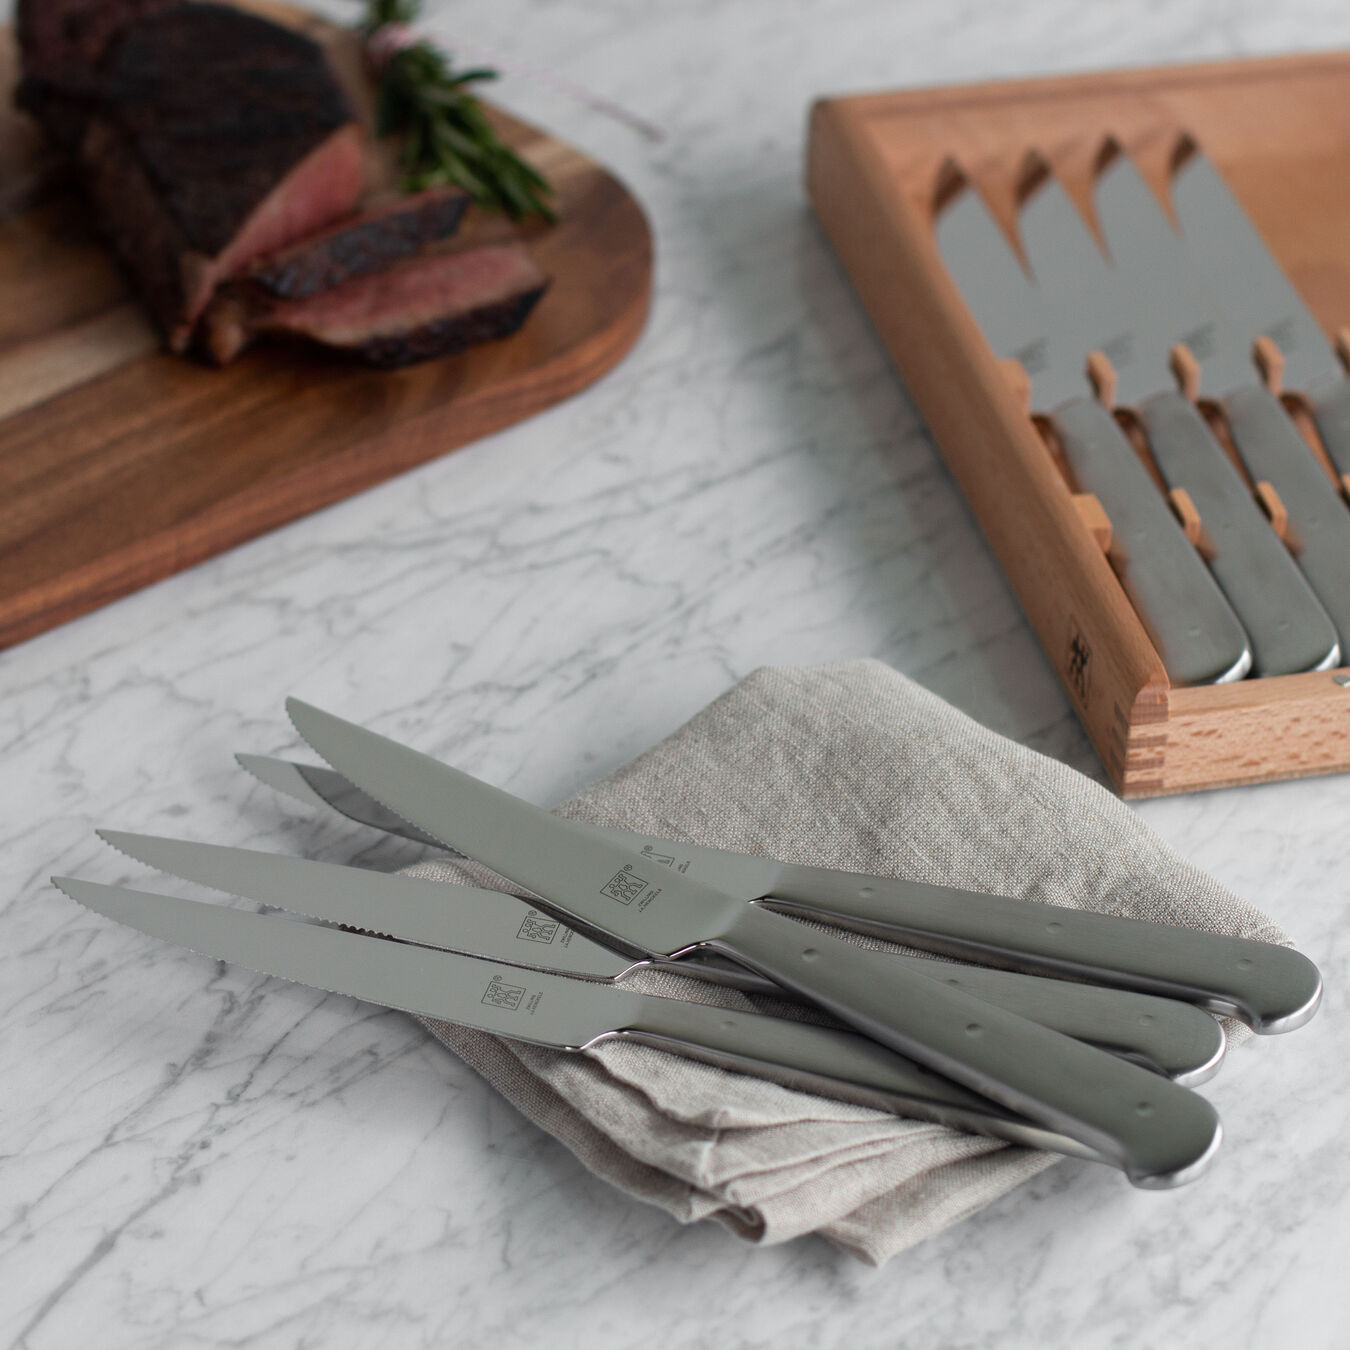 8-pc, 18/10 Stainless Steel Steak Knife Set With Wood Presentation Box,,large 5